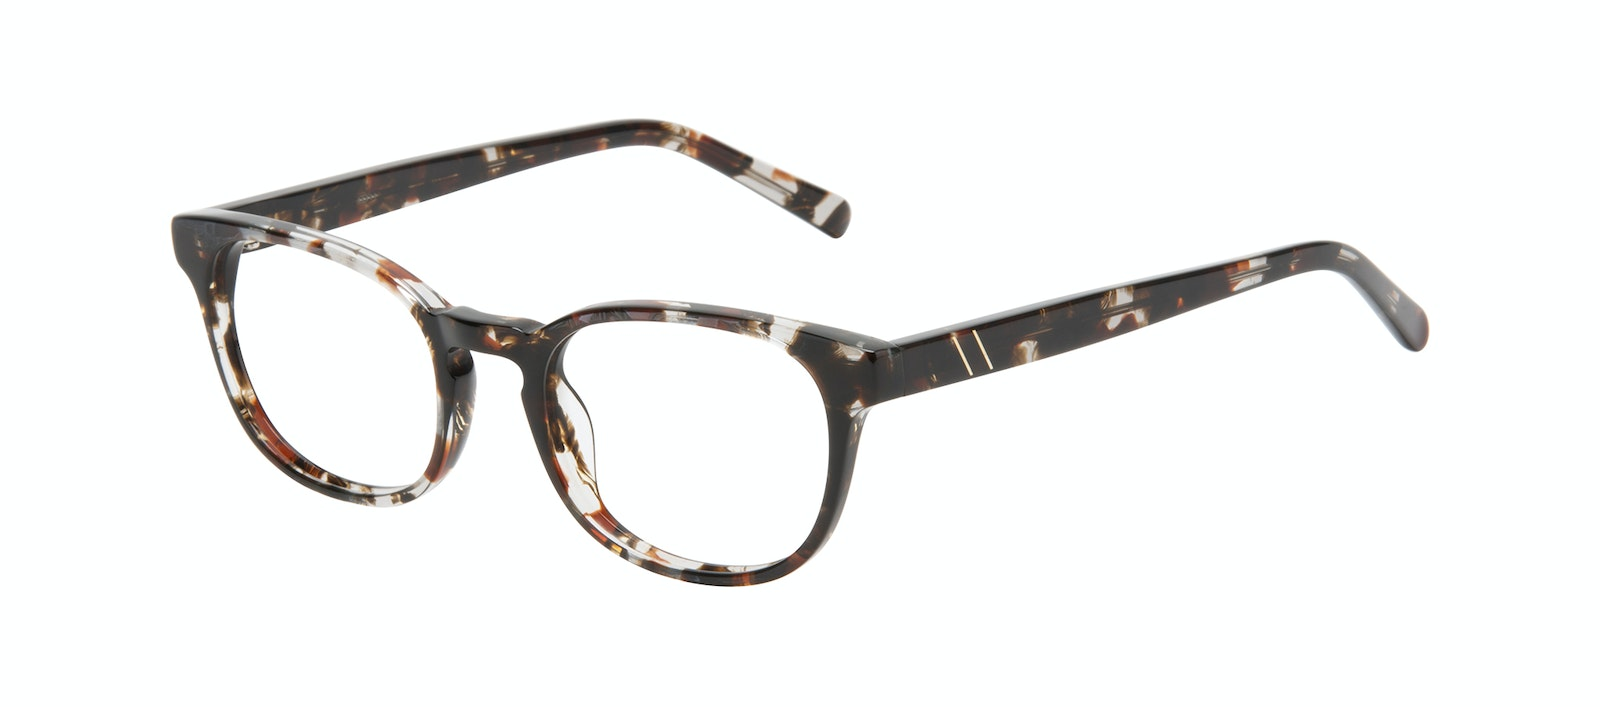 Affordable Fashion Glasses Square Eyeglasses Men Essence Mocha Tort Tilt